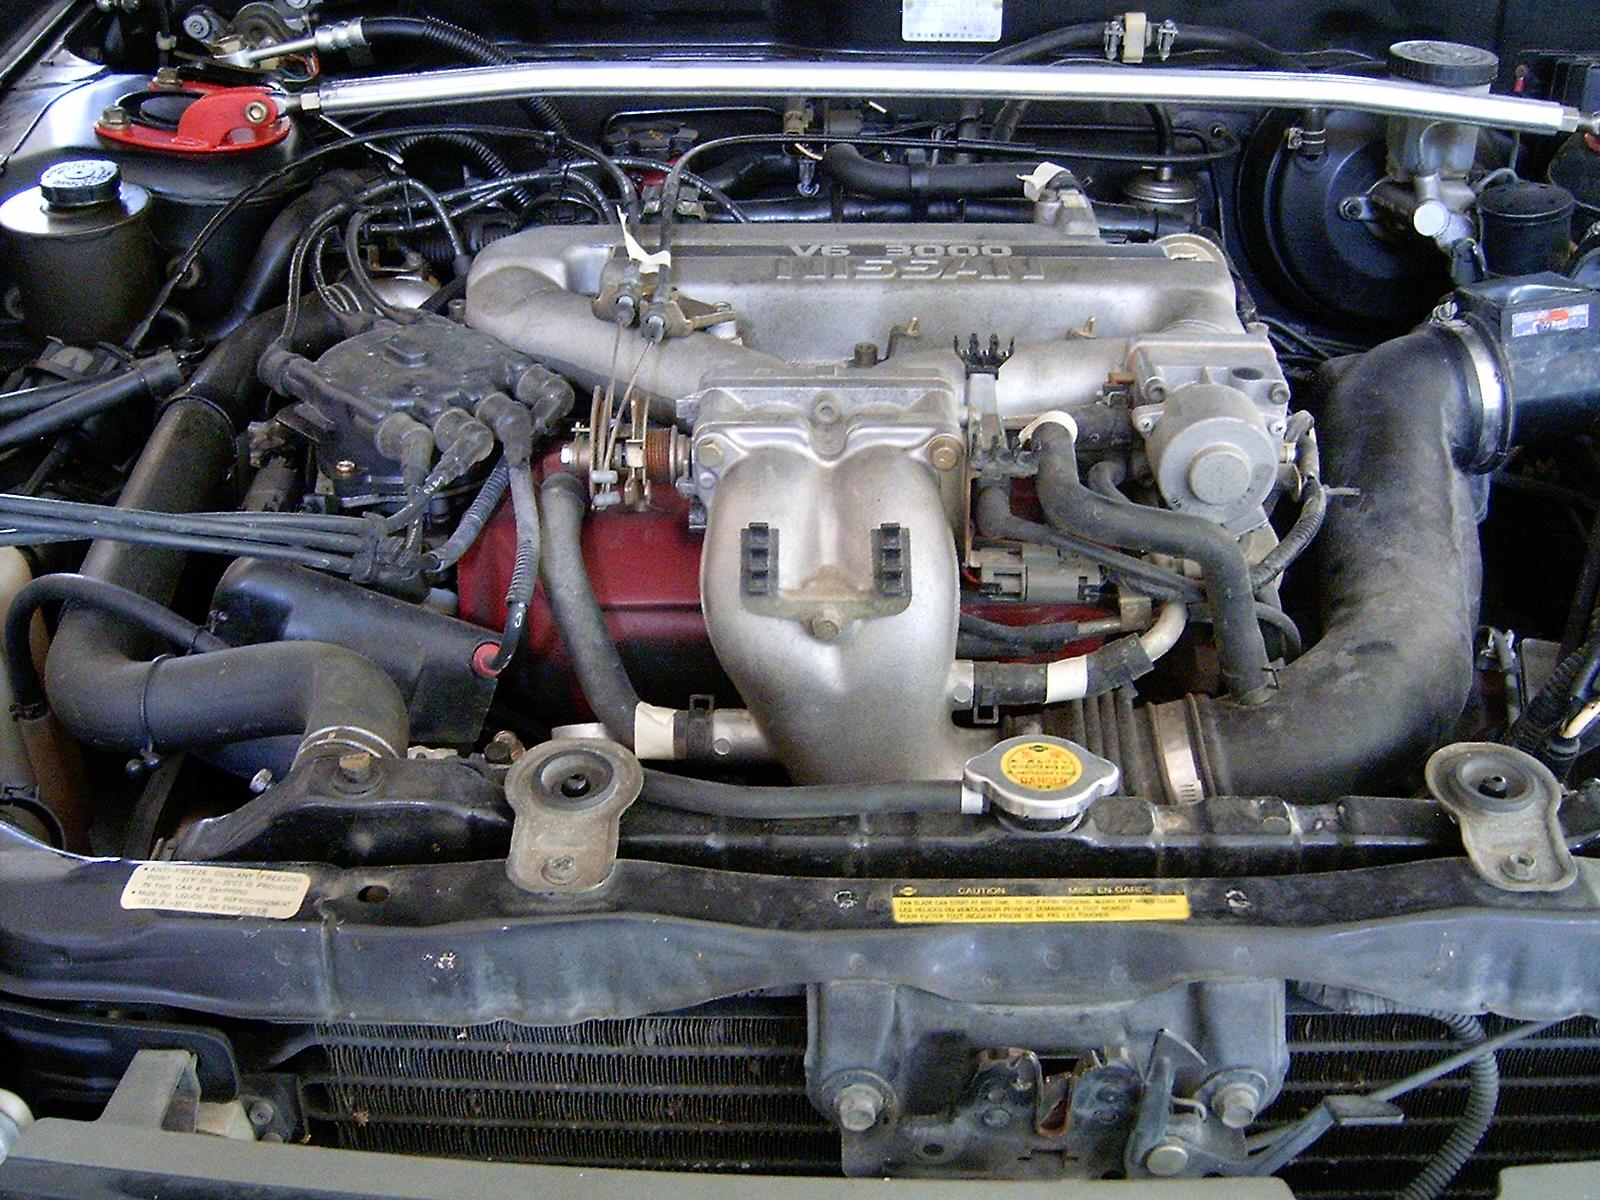 hight resolution of 1991 nissan maxima information and photos zombiedrive rh zombdrive com nissan sentra engine diagram nissan 3 5 engine diagram